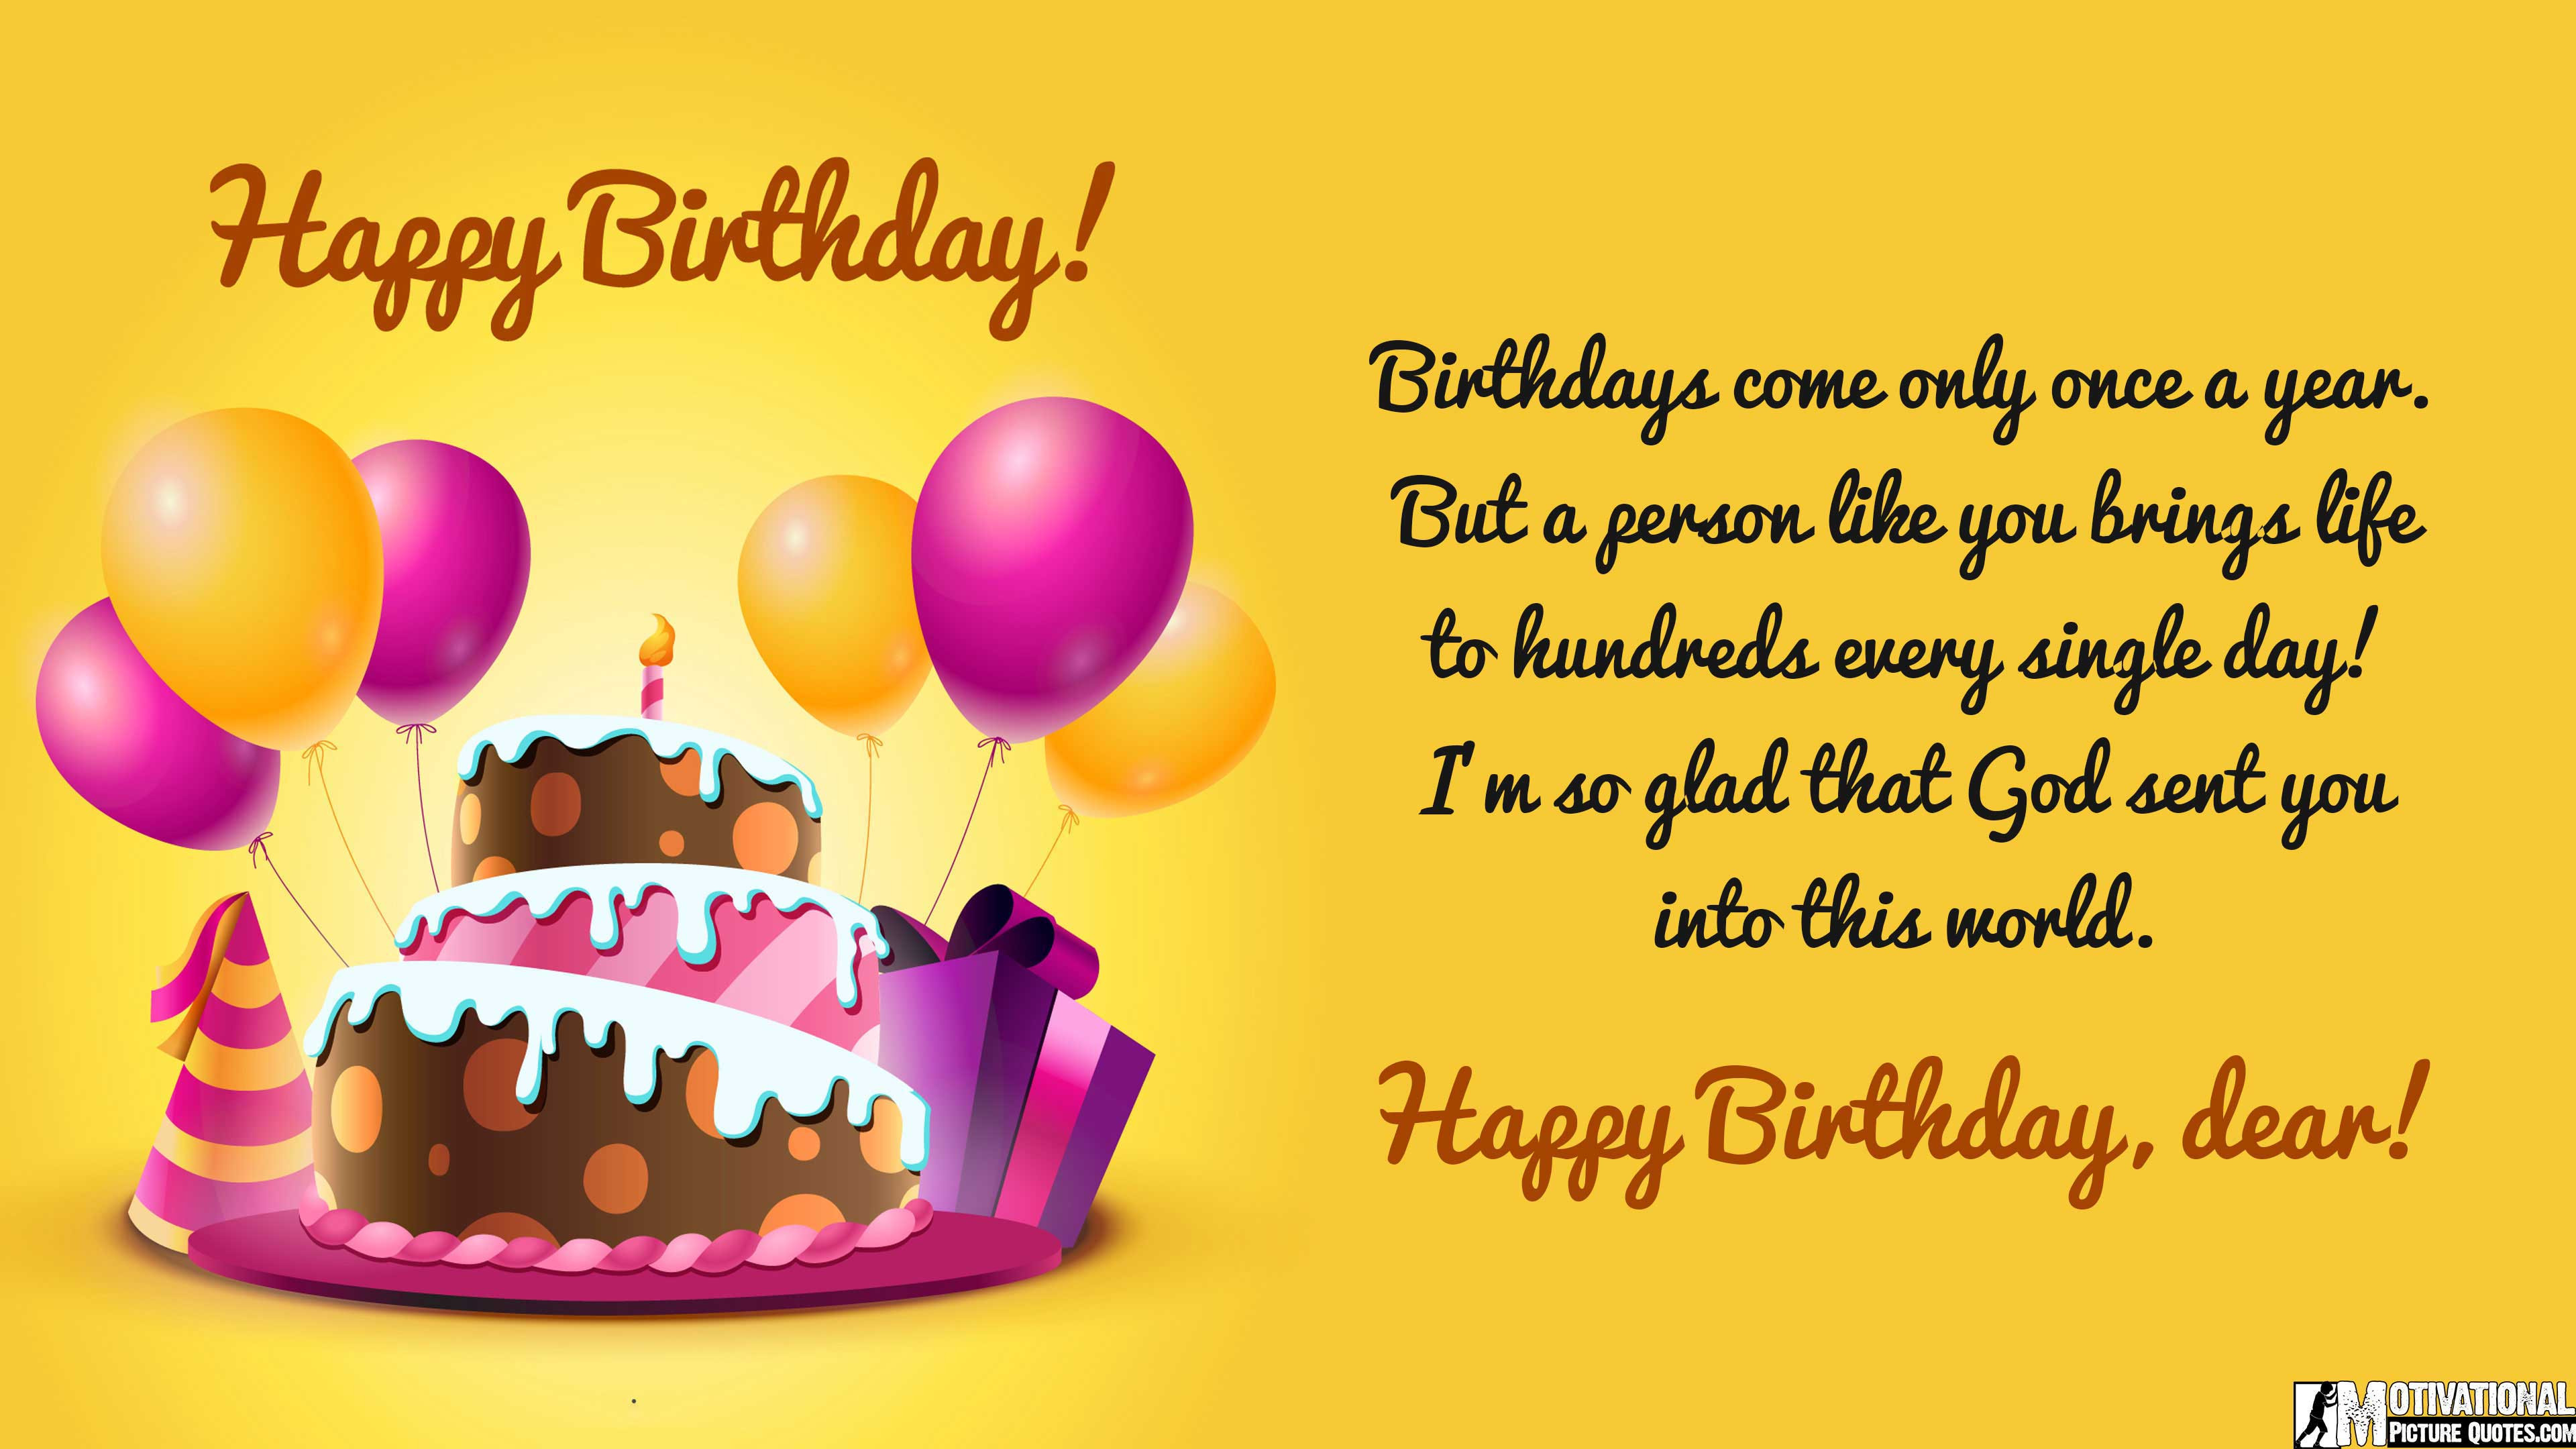 Best ideas about Sweet Birthday Quotes . Save or Pin 35 Inspirational Birthday Quotes Now.